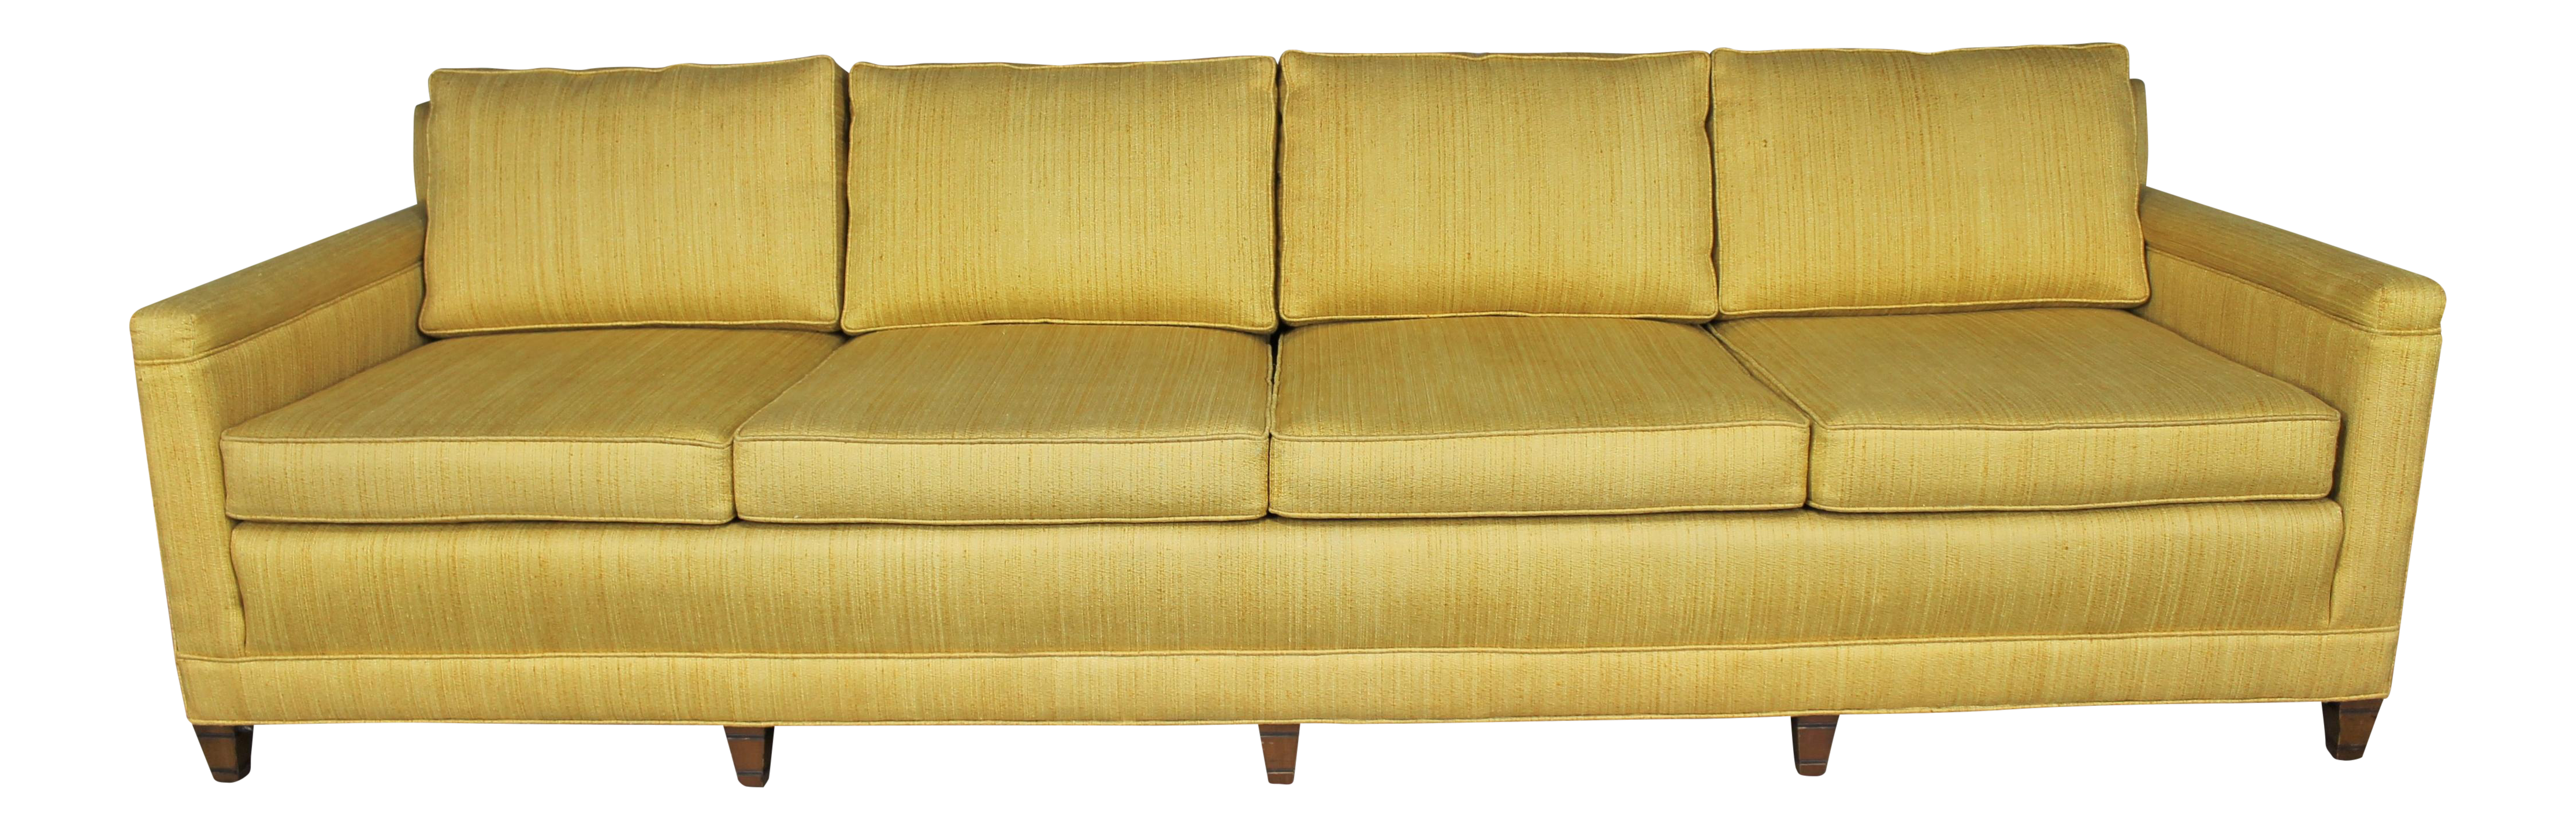 Mid Century Extra Long Lawson Golden Yellow Sofa